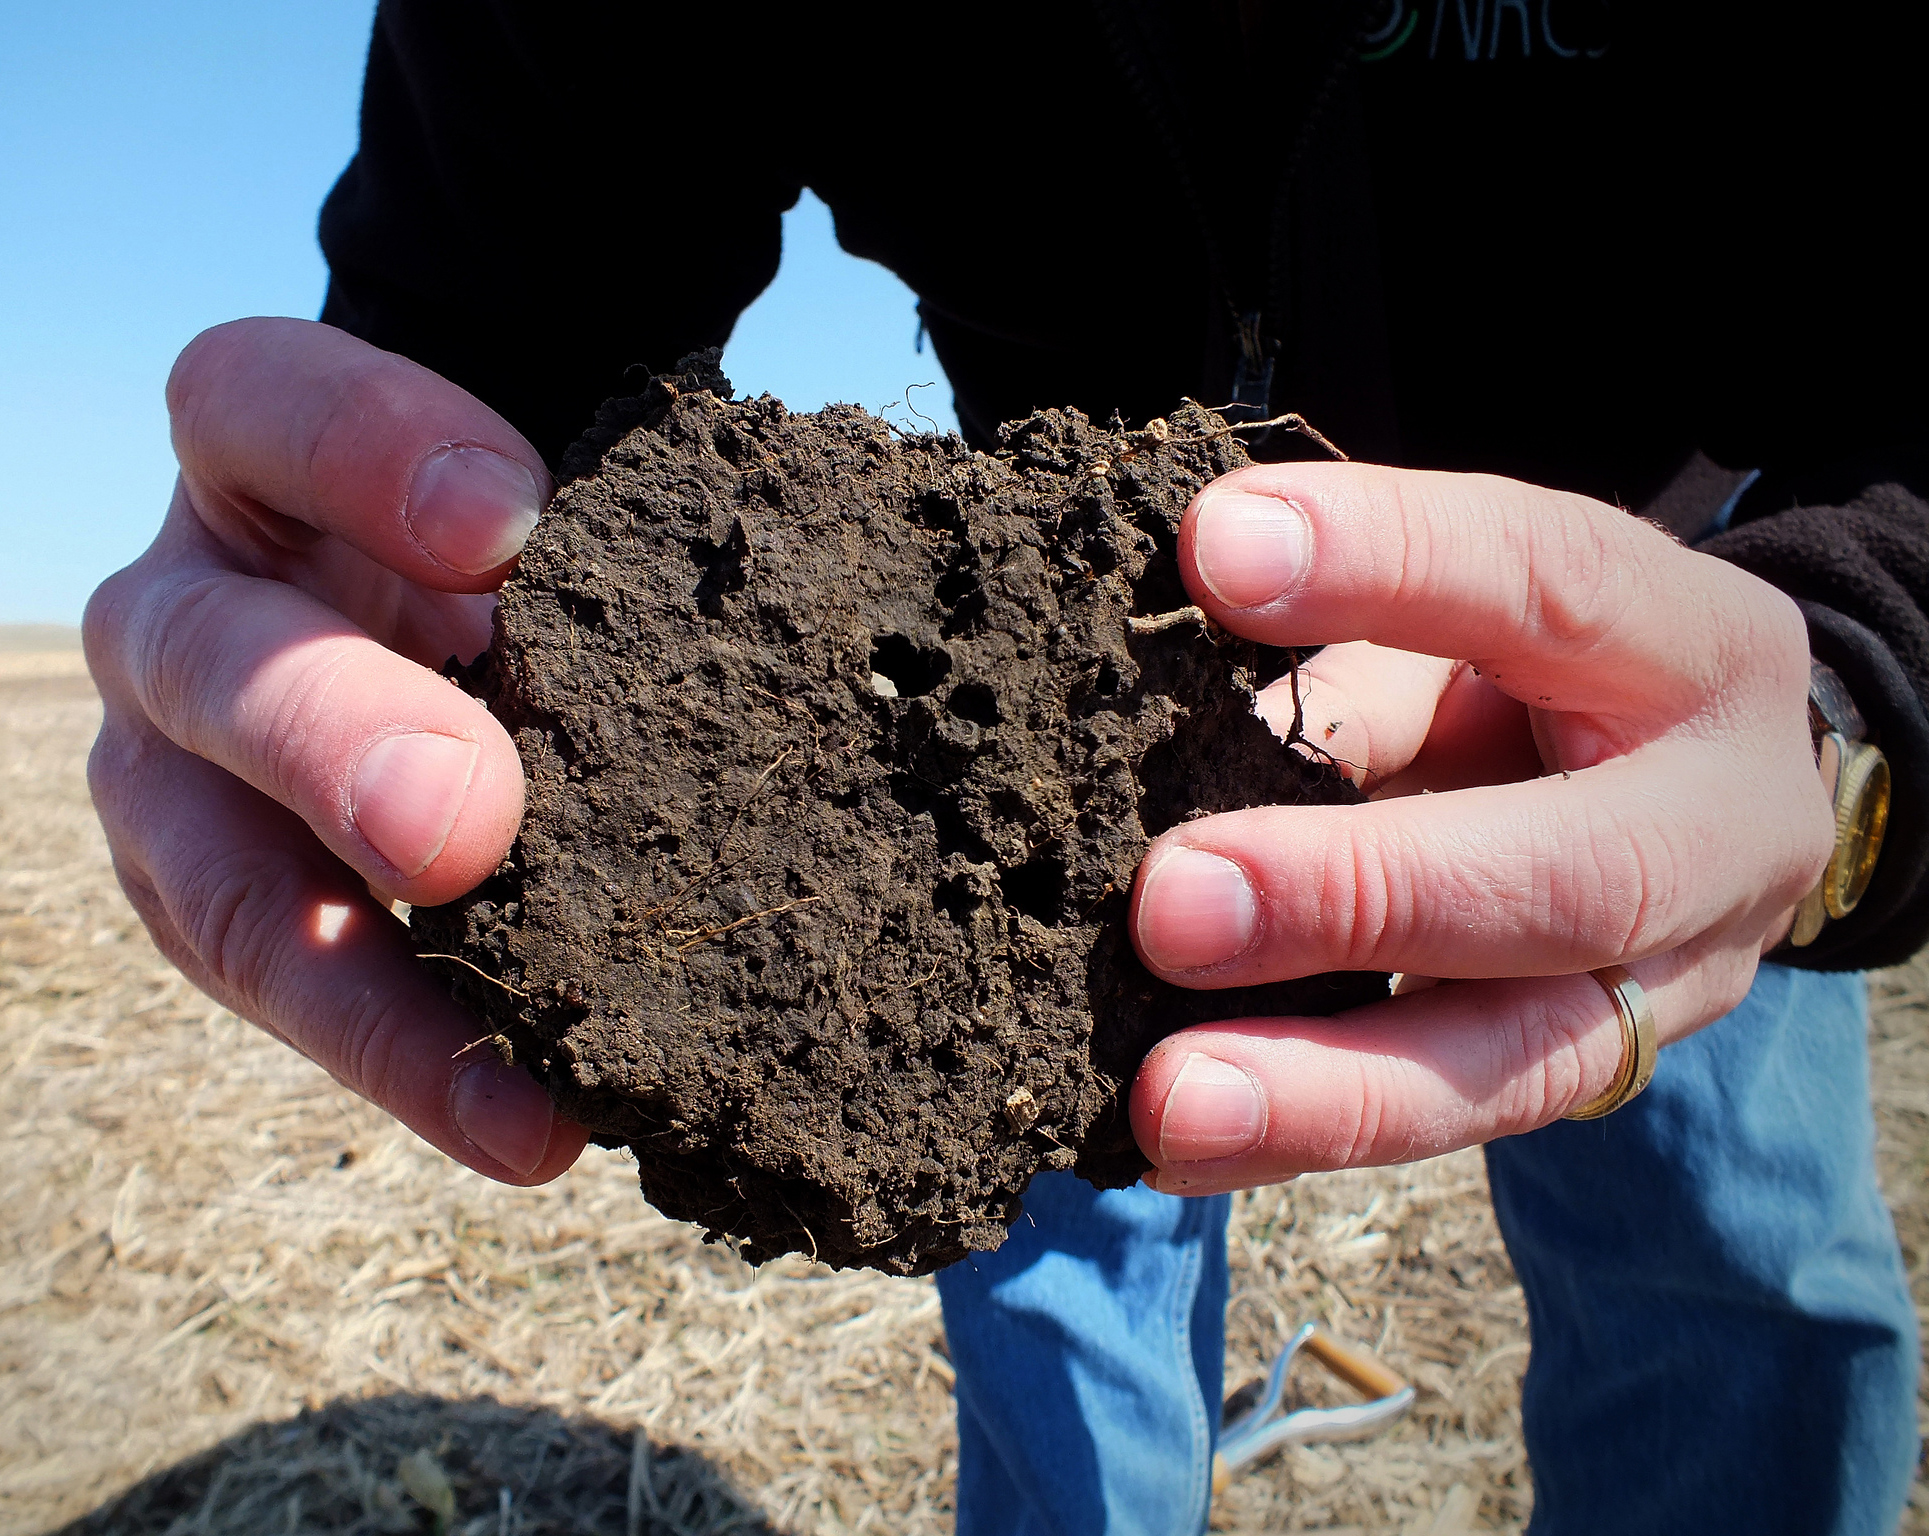 We can repair and rebuild it. For years, it was believed that a certain amount of cropland soil e